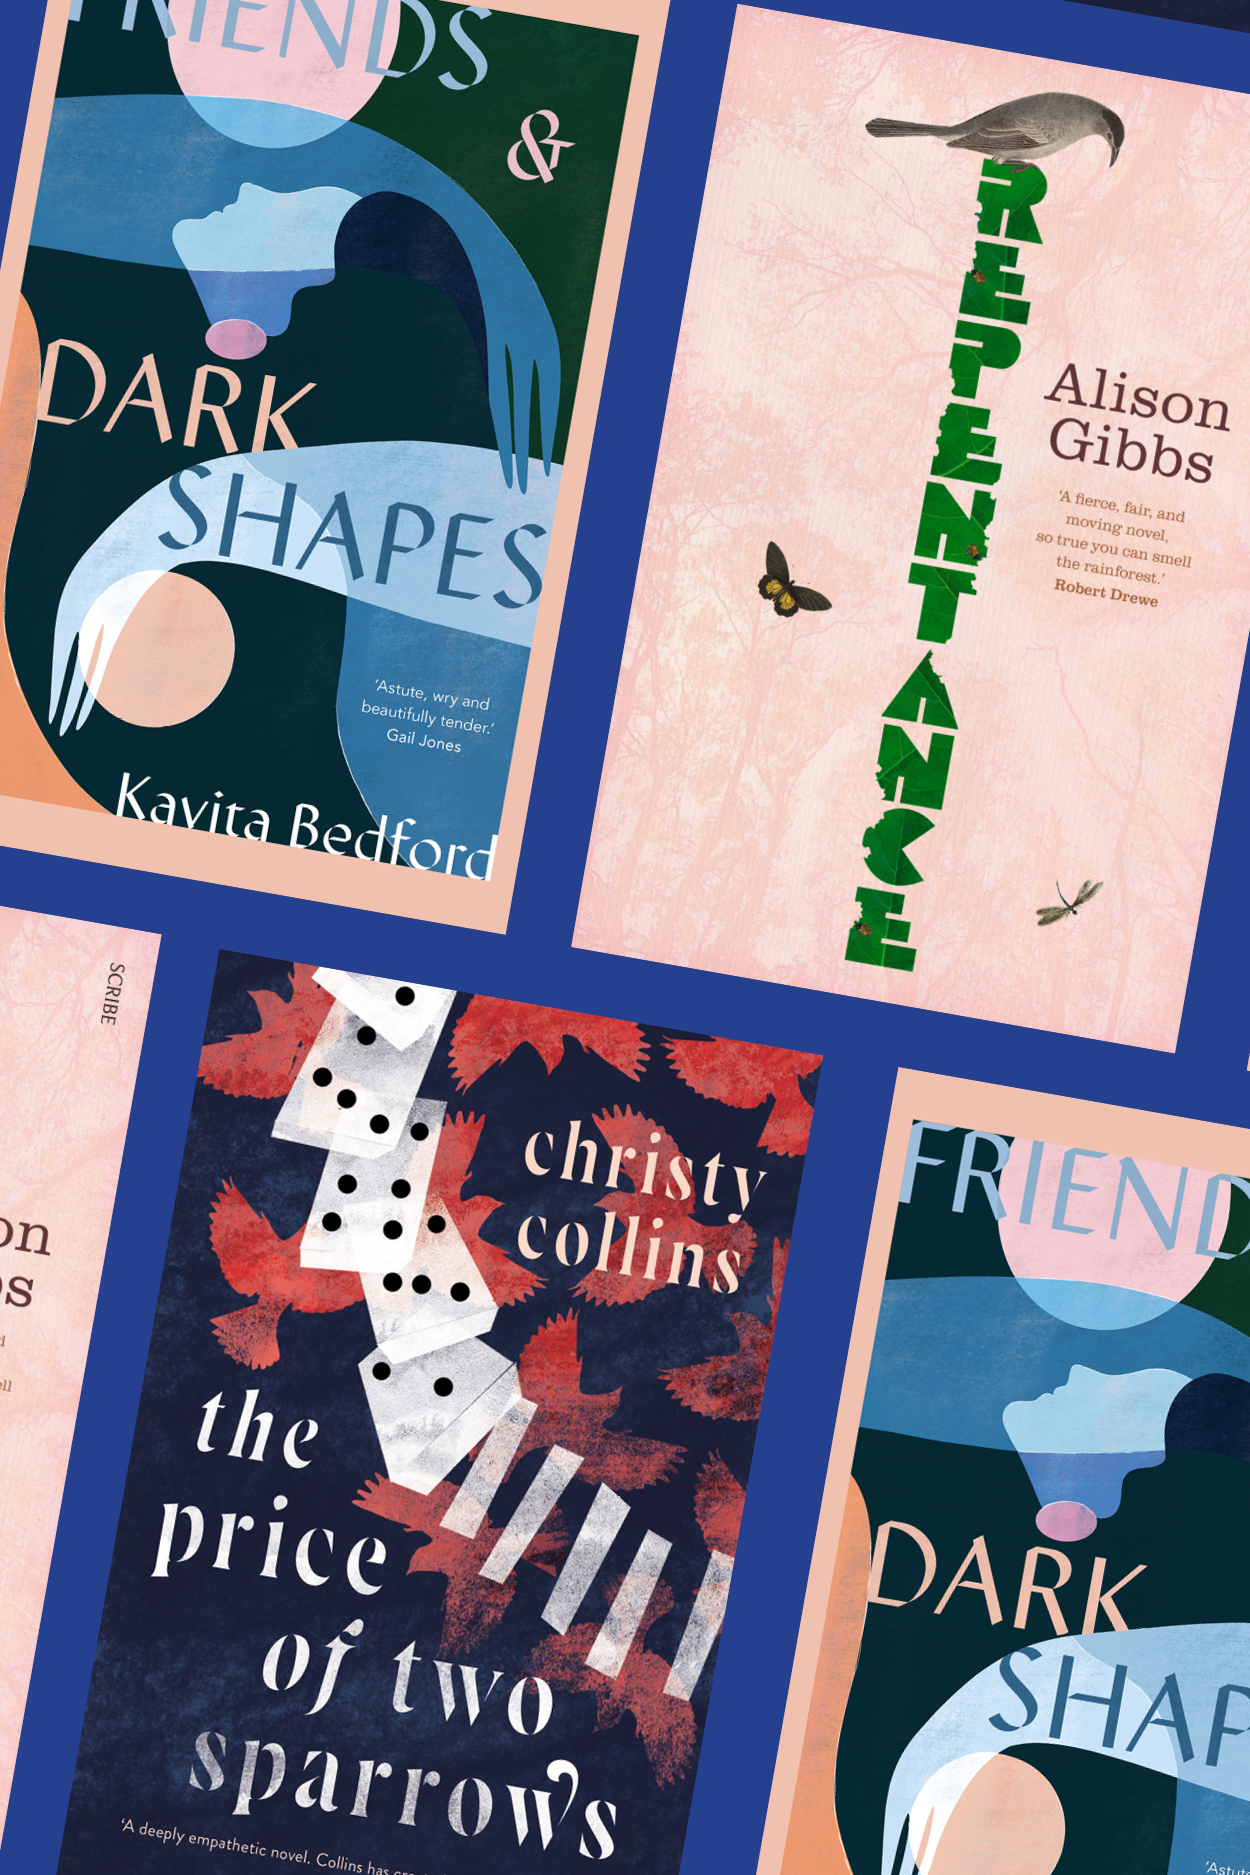 Anna MacDonald reviews 'The Price of Two Sparrows' by Christy Collins, 'Repentance' by Alison Gibbs, 'Low Expectations' by Stuart Everly-Wilson, and 'Friends and Dark Shapes' by Kavita Bedford